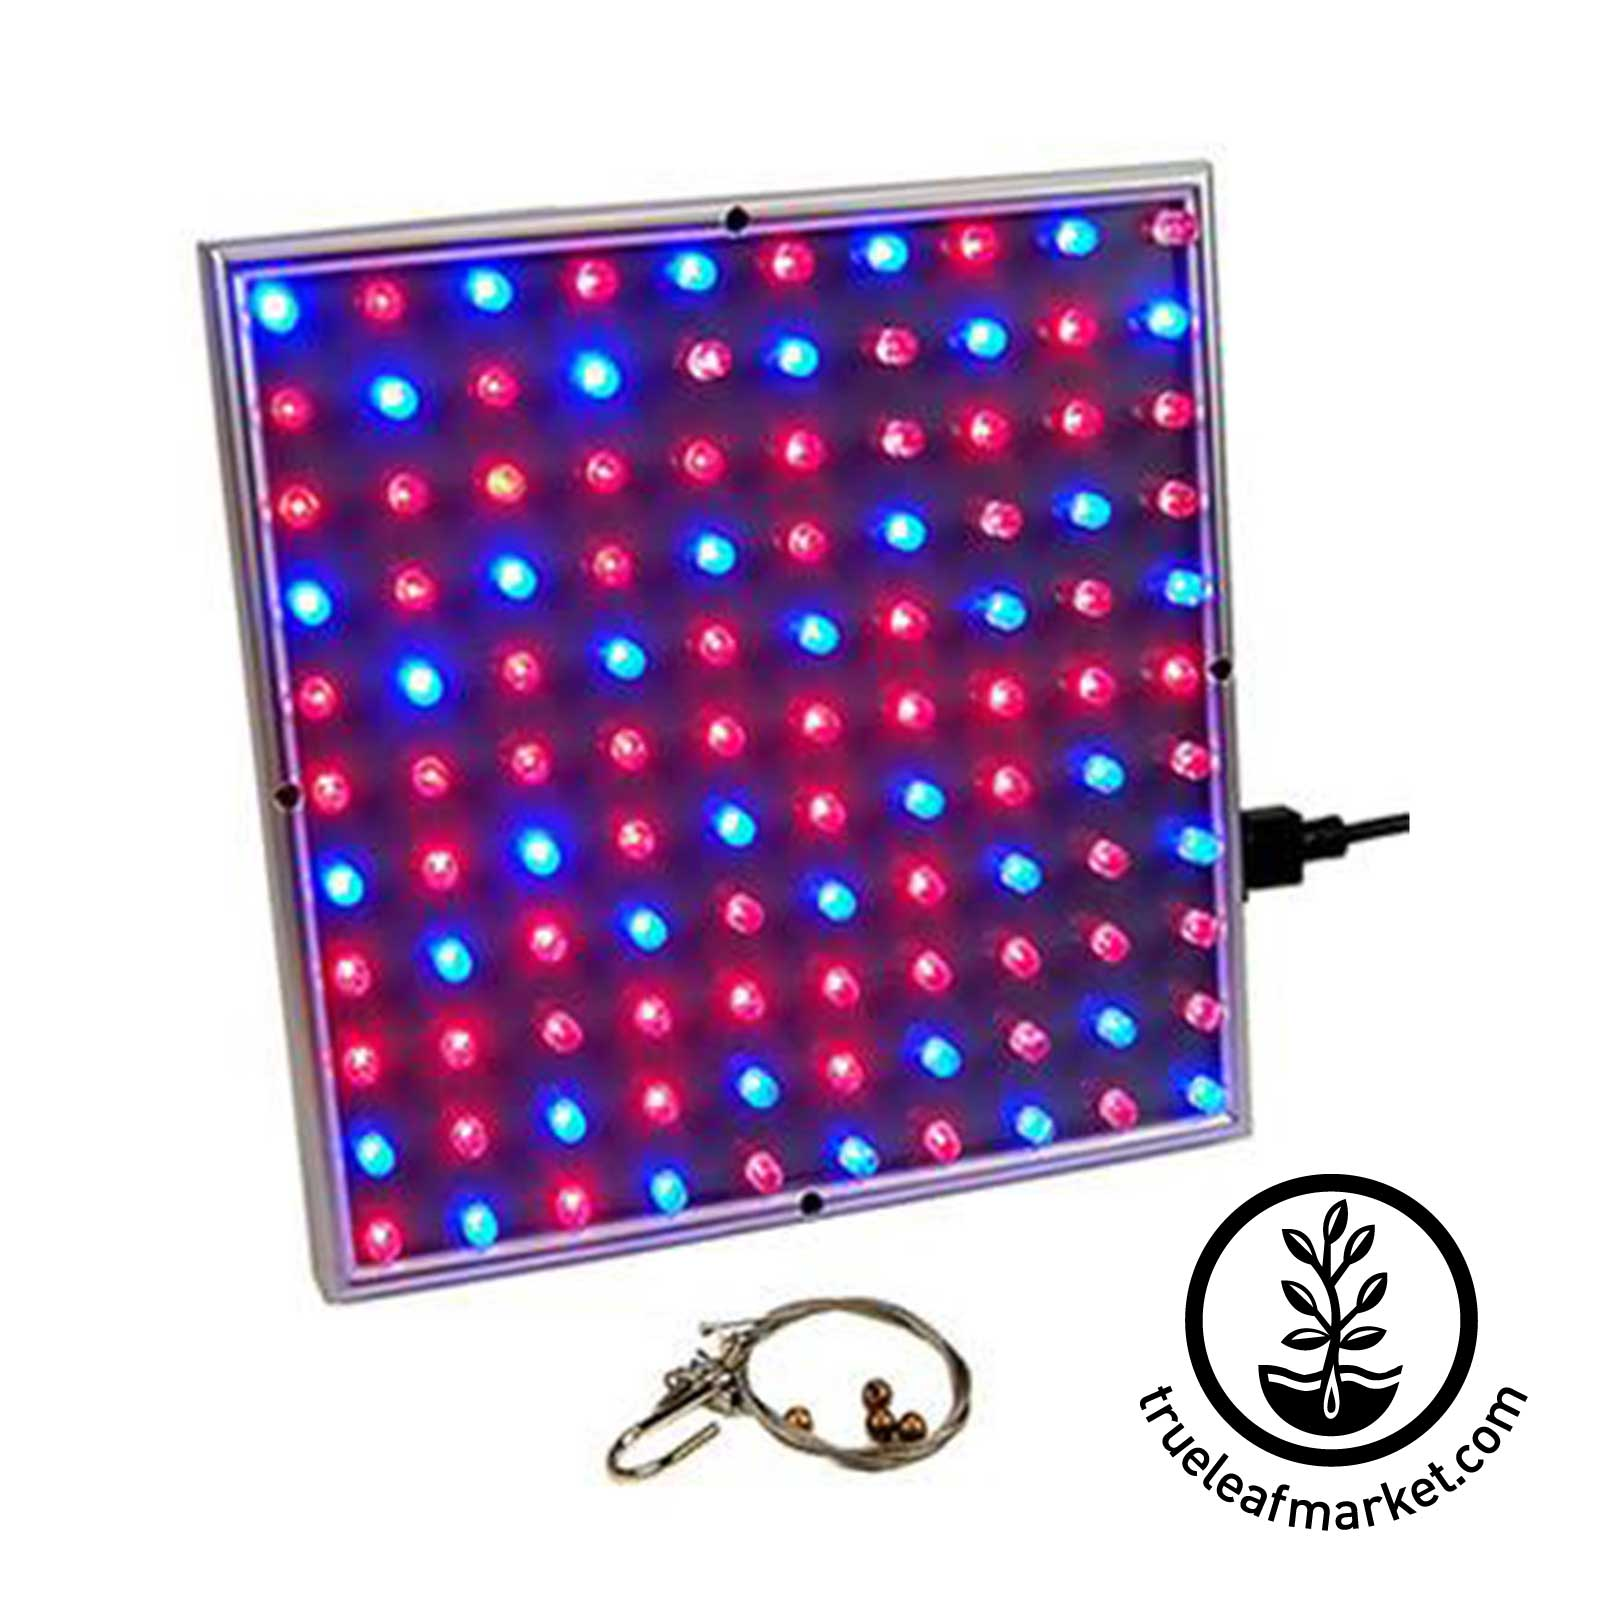 50 Watt LED Grow Light Panel